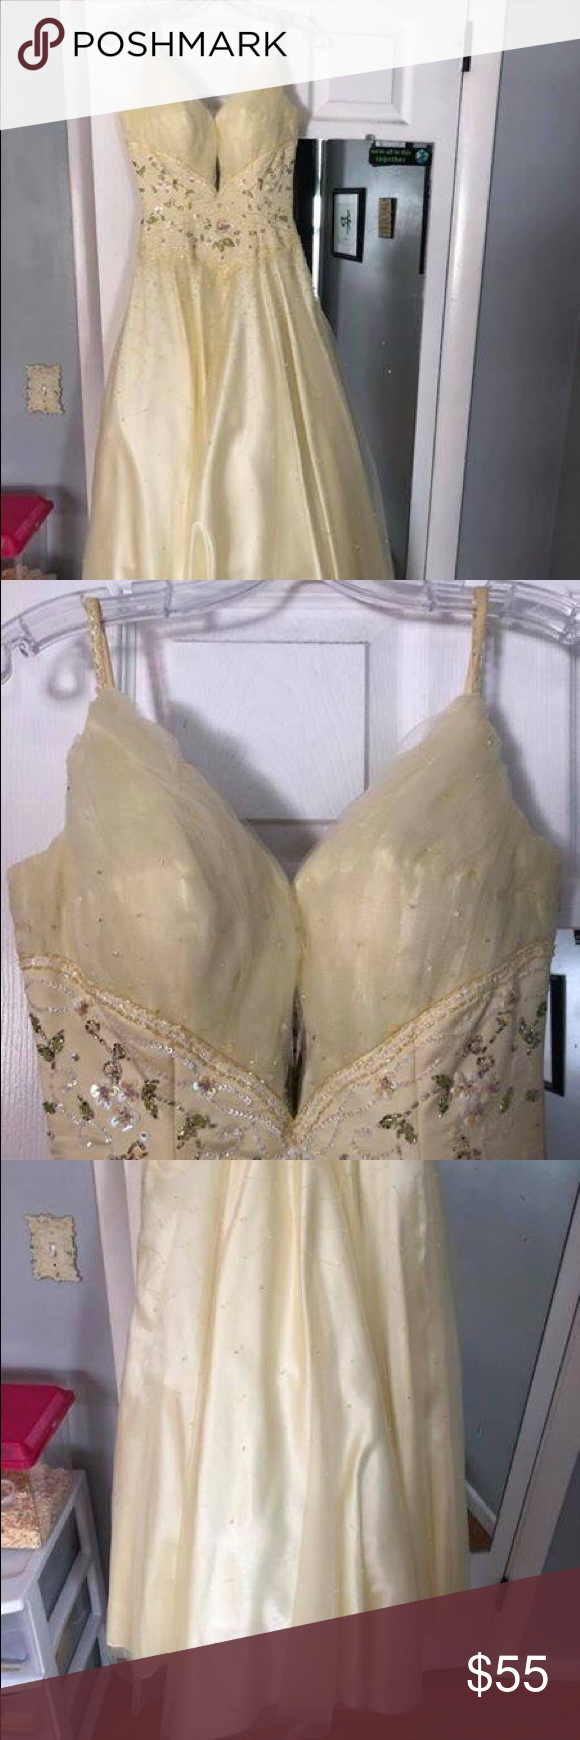 Yellow princess prom dress this dress reminds me of the disney